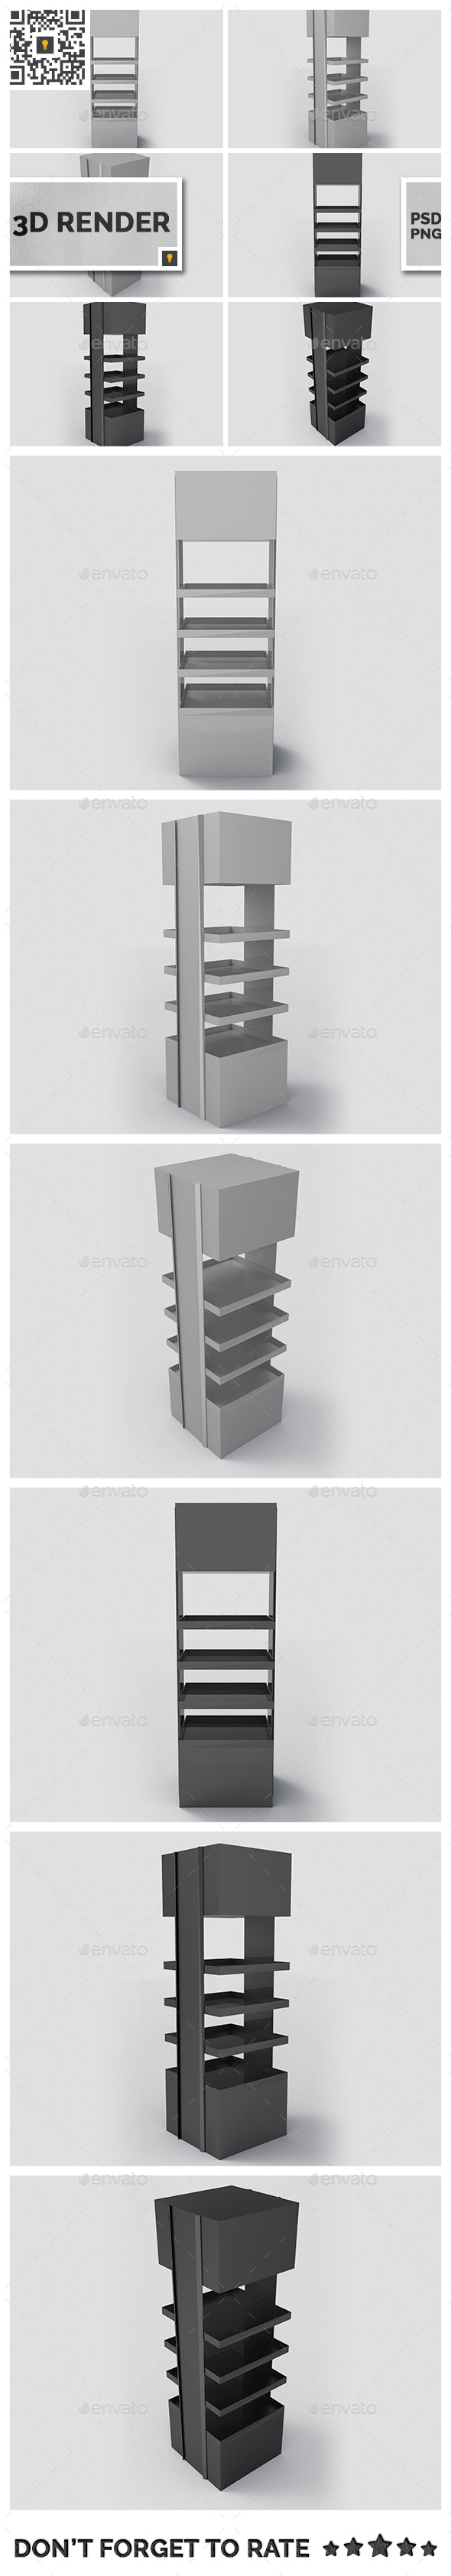 Promotional Store Shelf Stand 3D Render - Objects 3D Renders